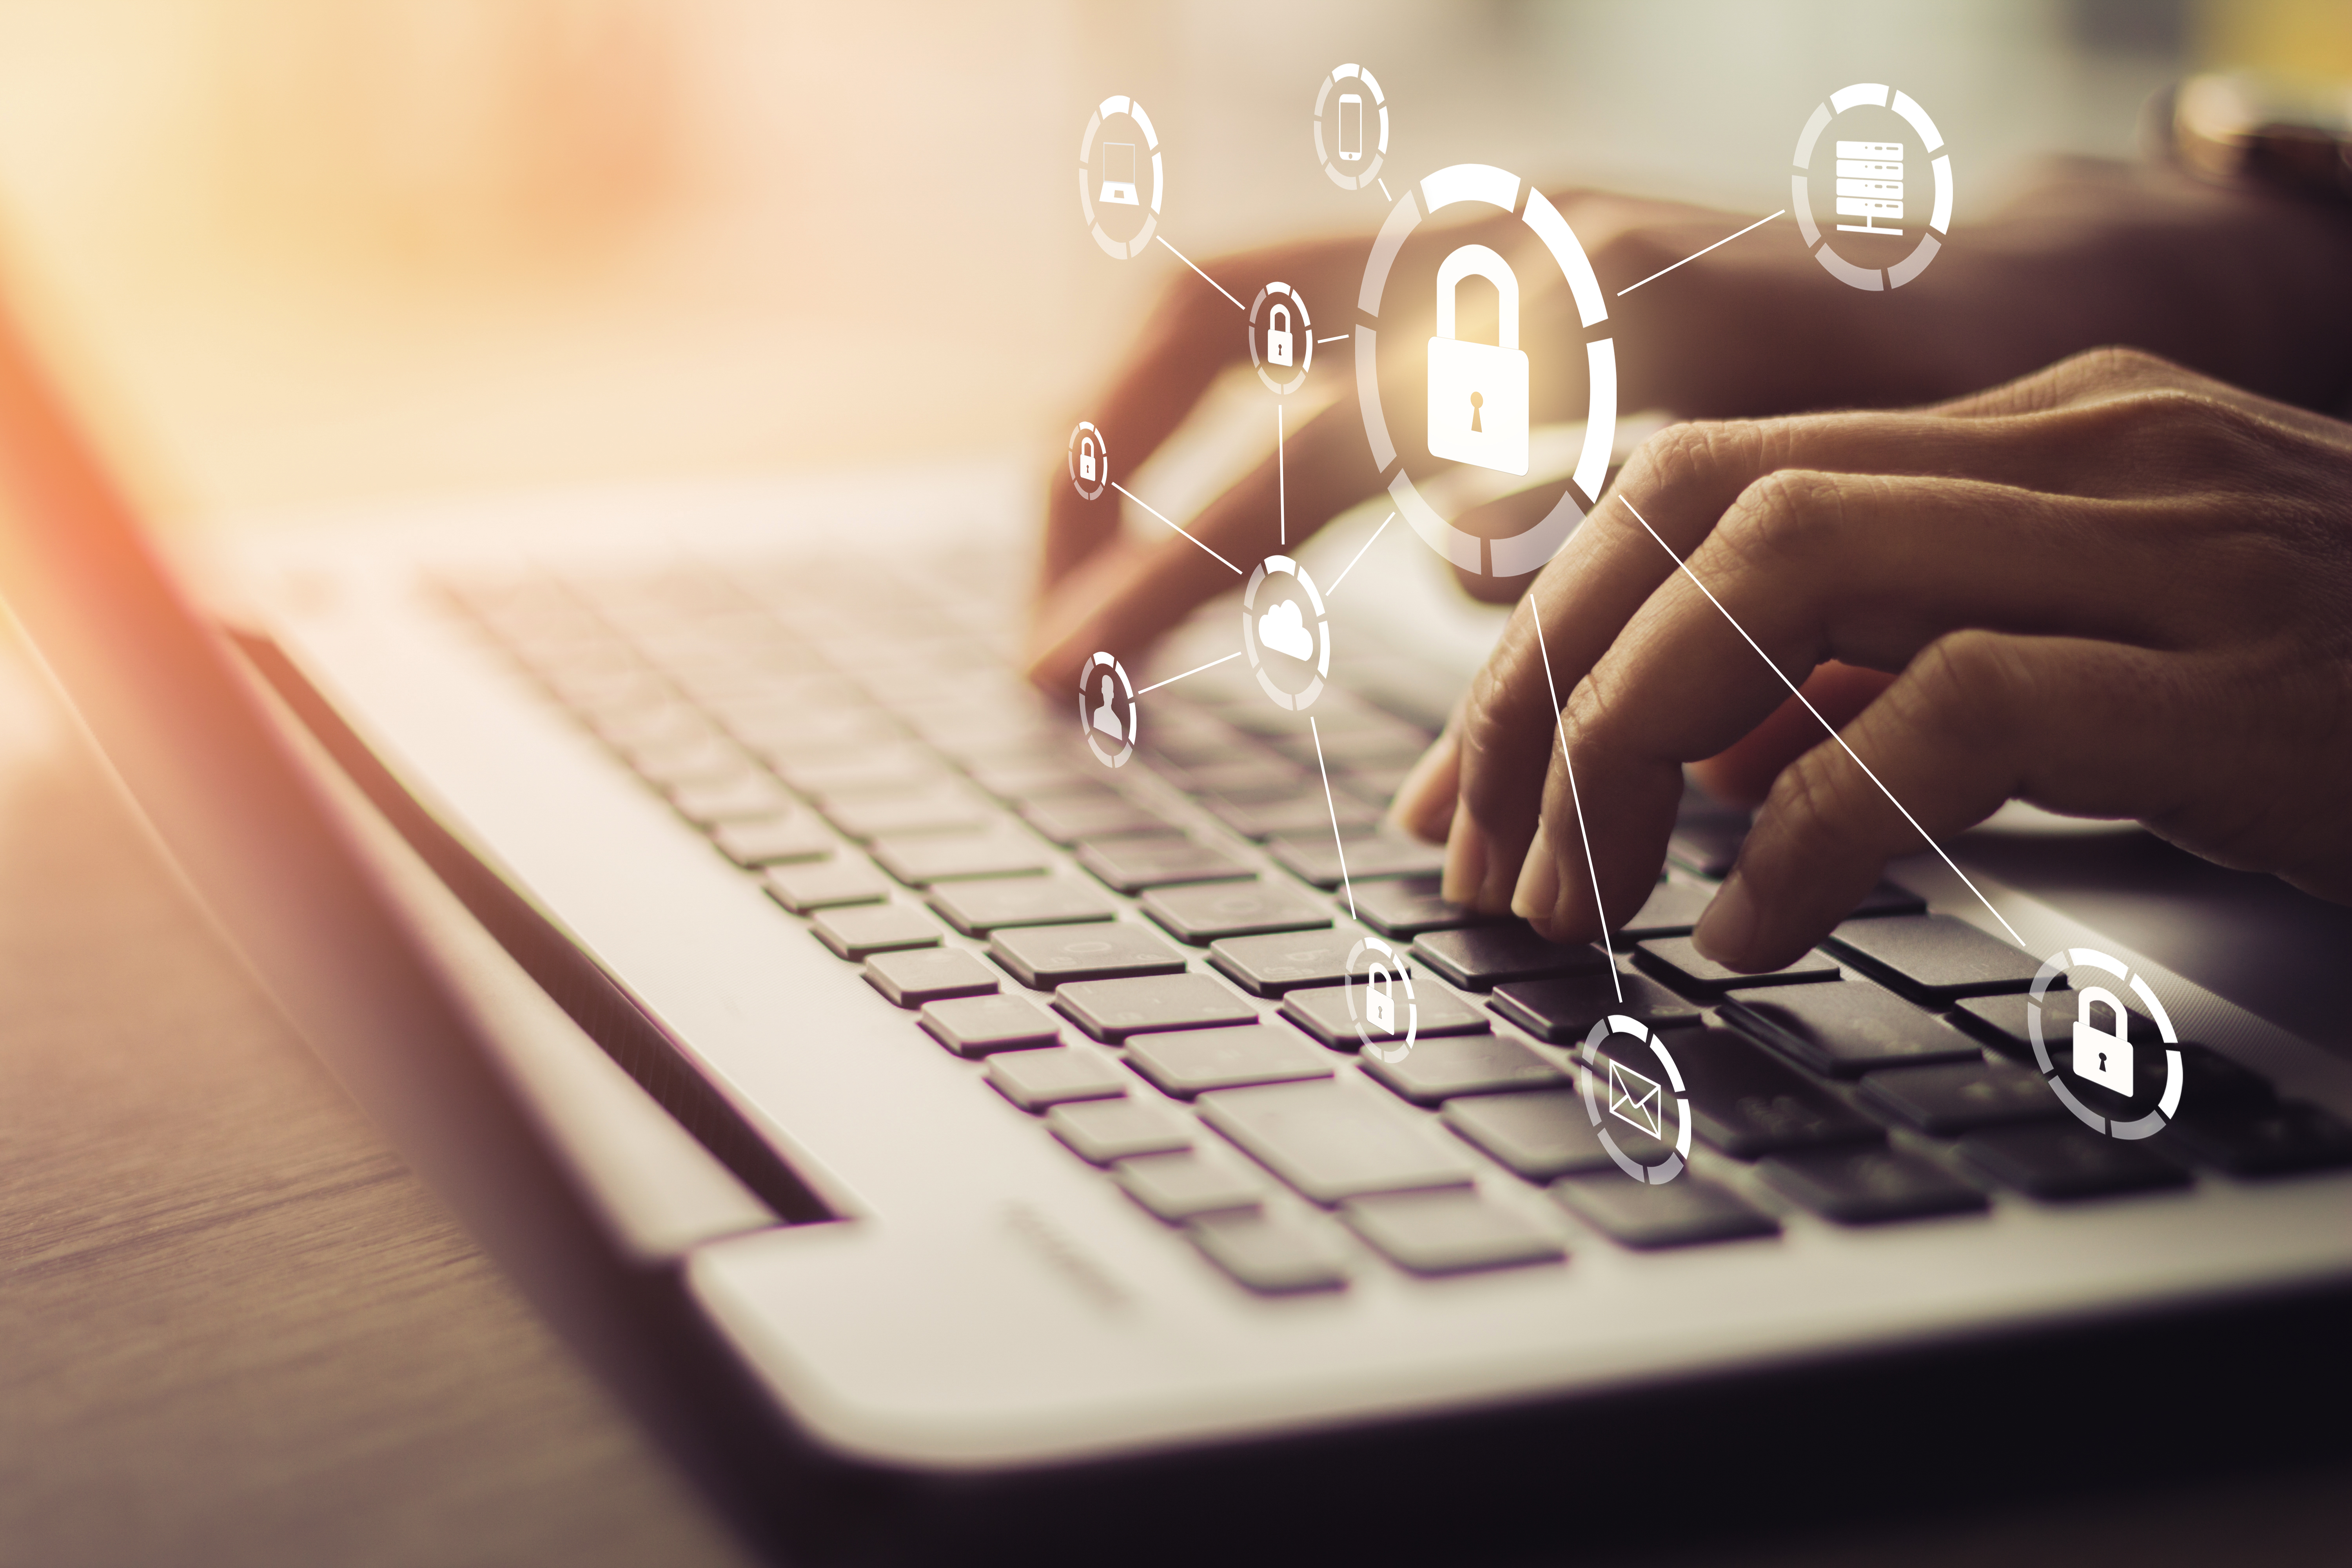 Are there Internal IT Security Threats, as Opposed to Outside Security Attacks?